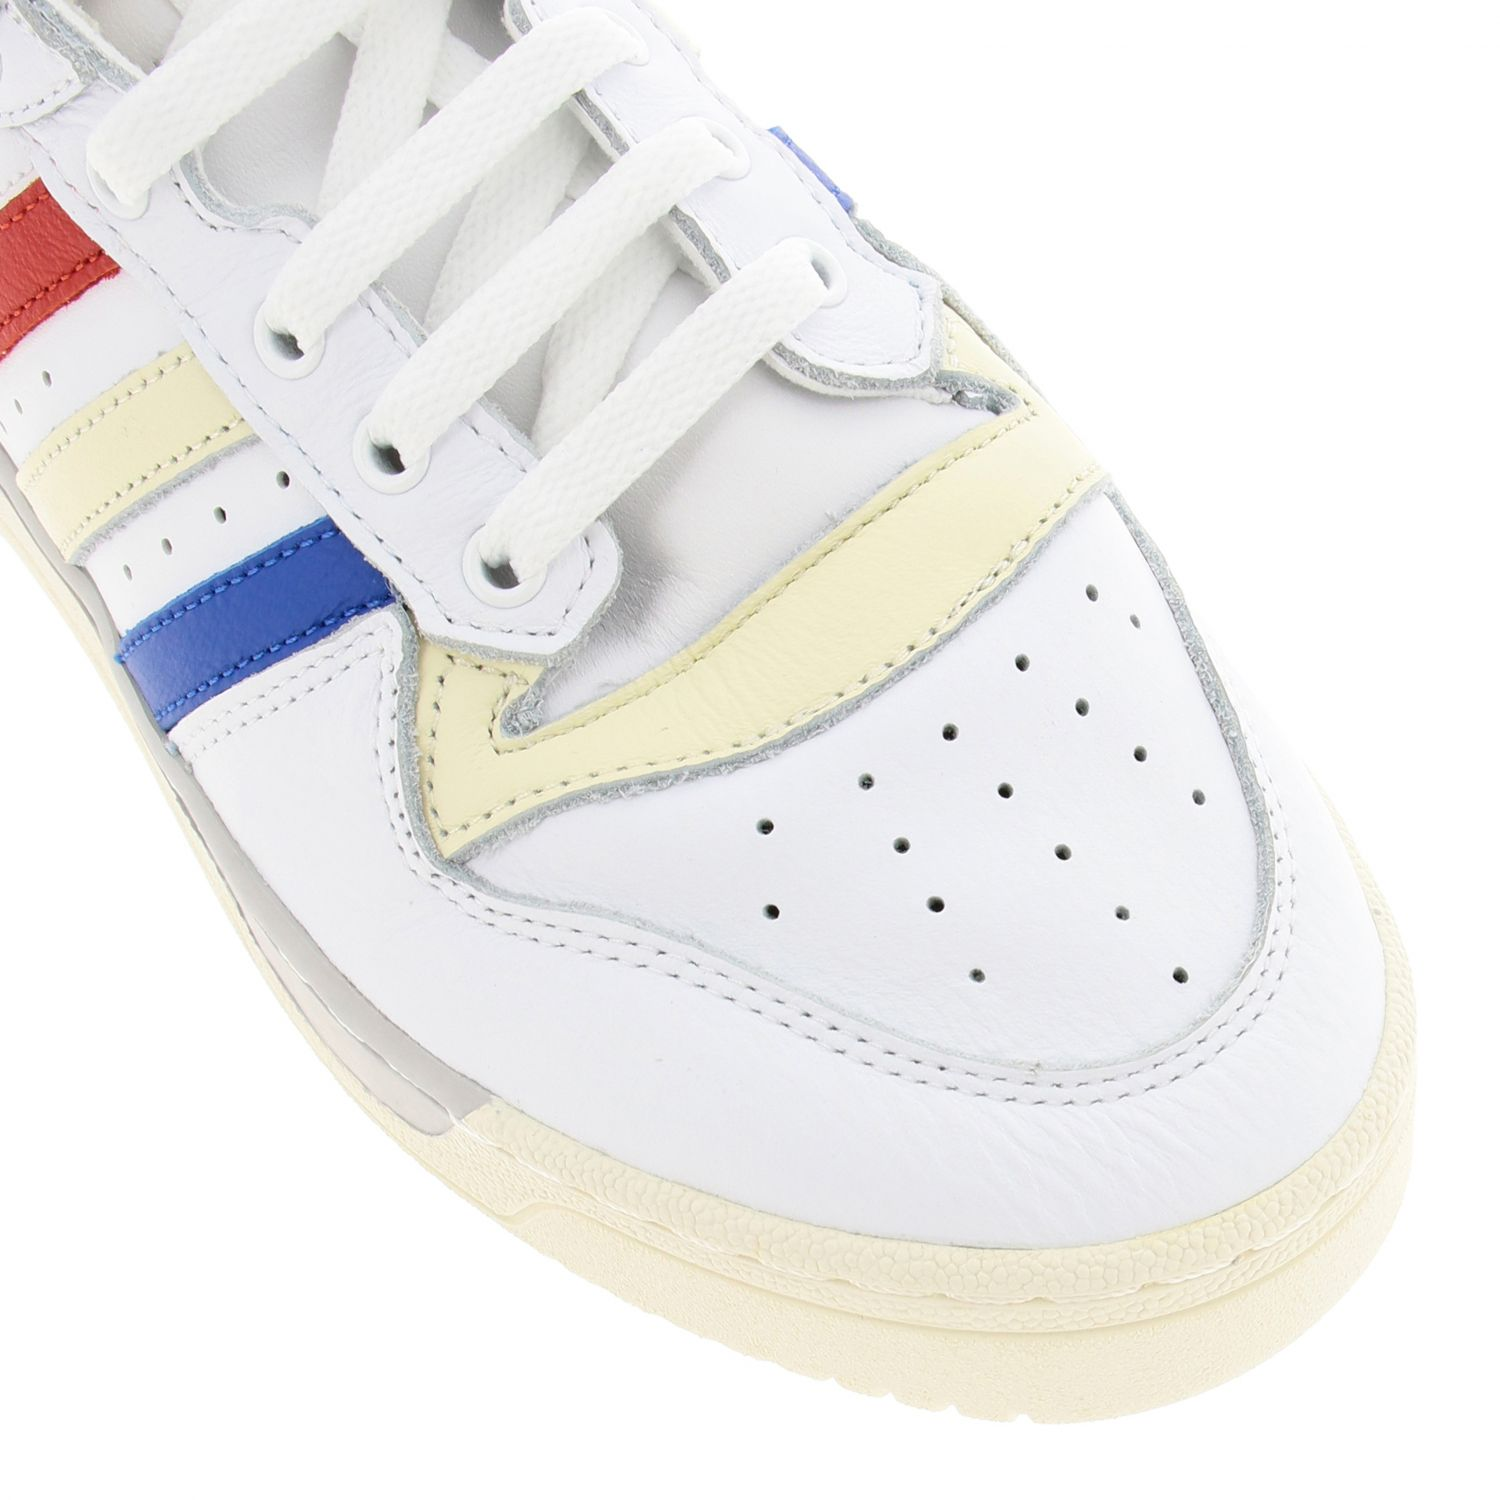 Trainers Adidas Originals: Trainers men Adidas Originals white 3